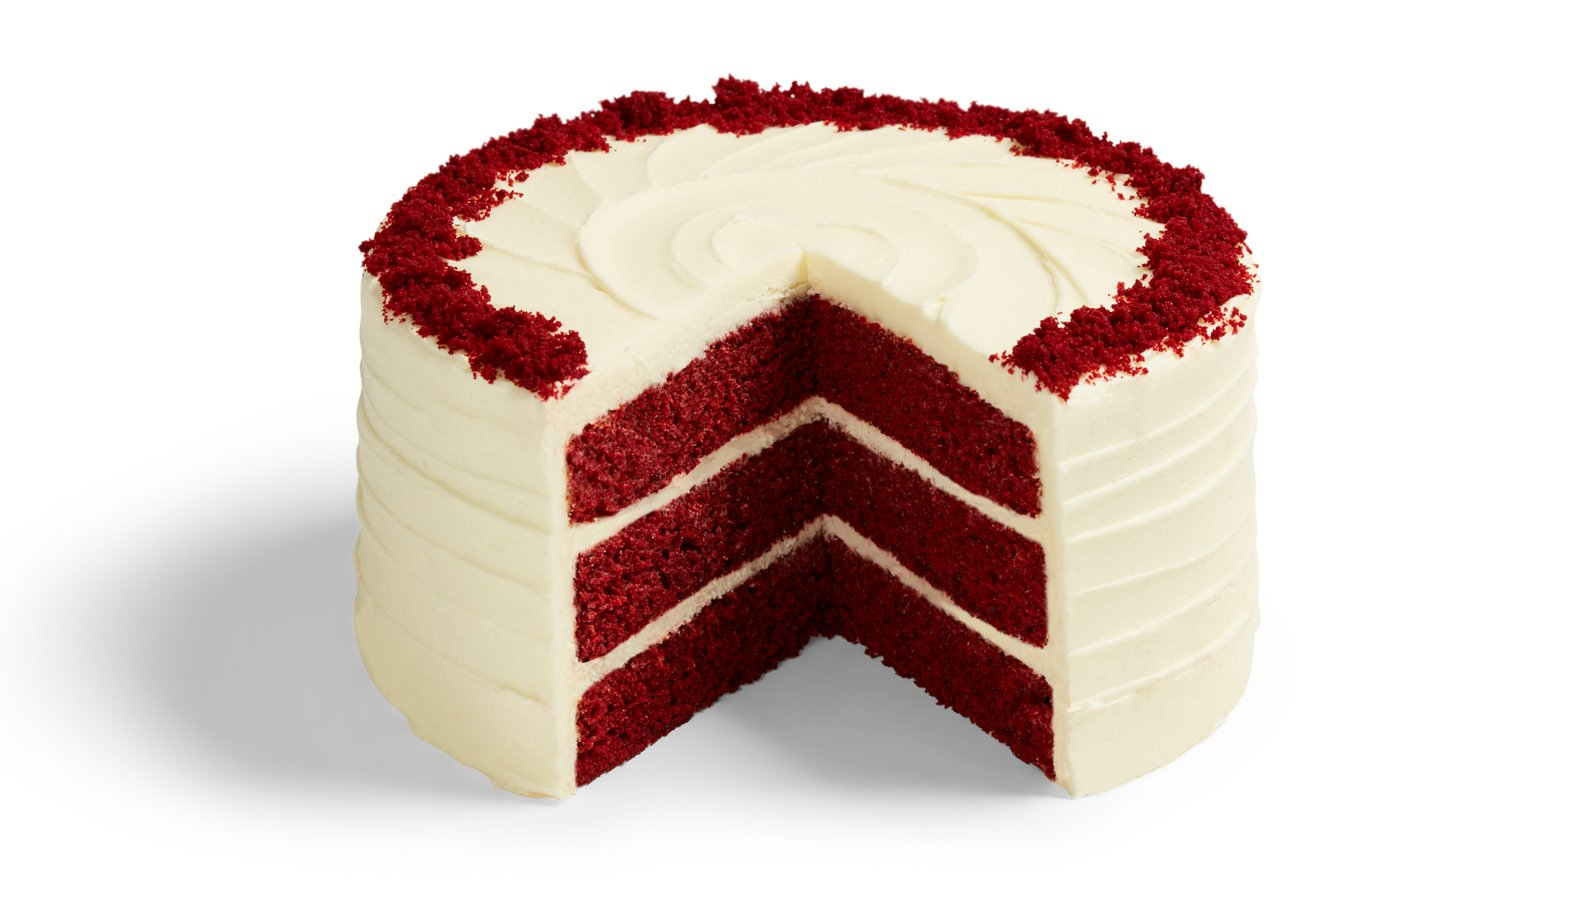 Youre Unlikely To Find A Better Looking Or Tastier Red Velvet Cake Anywhere In The Country Founder Tarek Malouf Says Its Down Quality Of